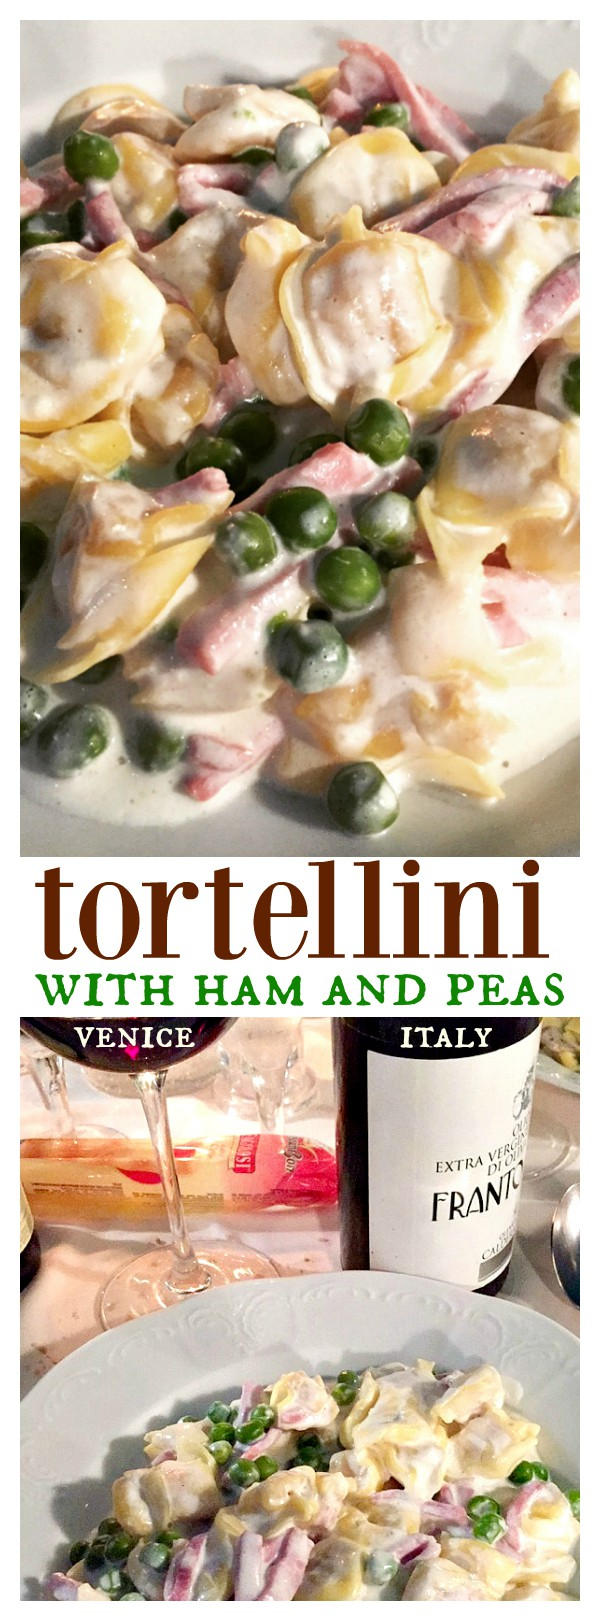 Tortellini with Ham and Peas in Venice, Italy